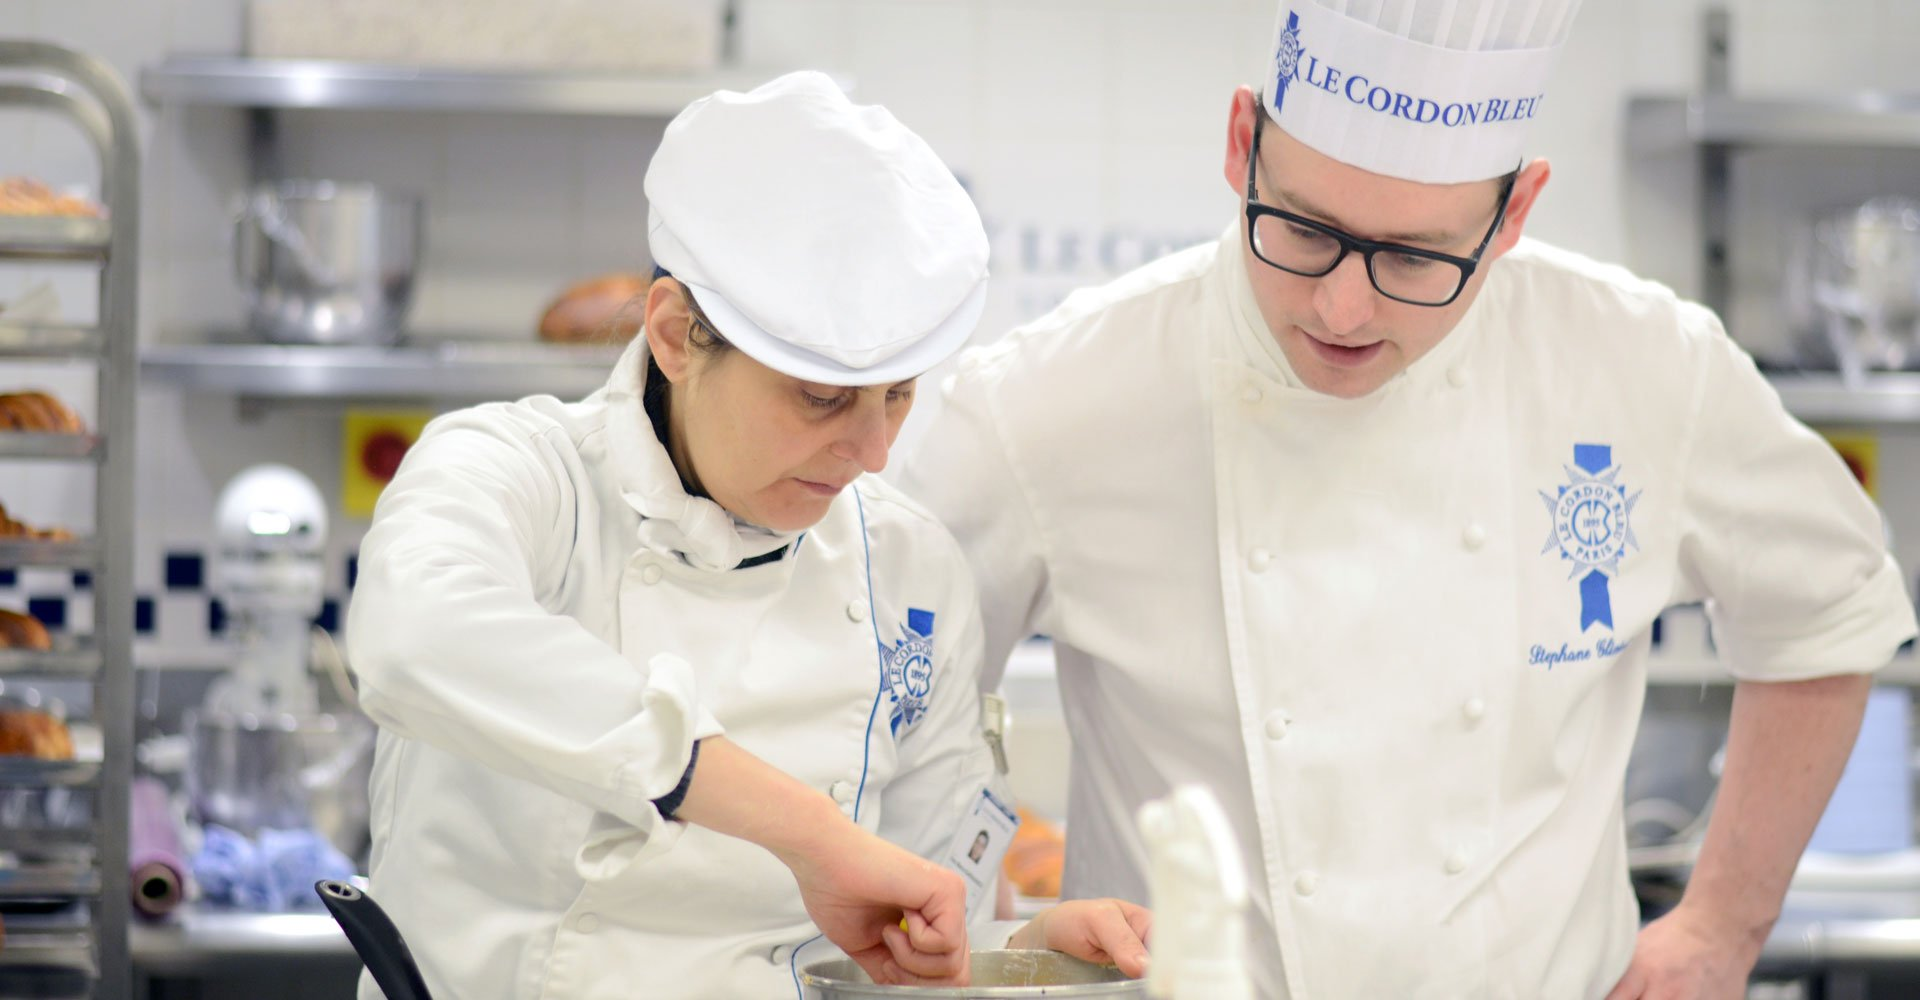 Boulangerie and Bakery Chef Stephane Gliniewicz- le cordon bleu london